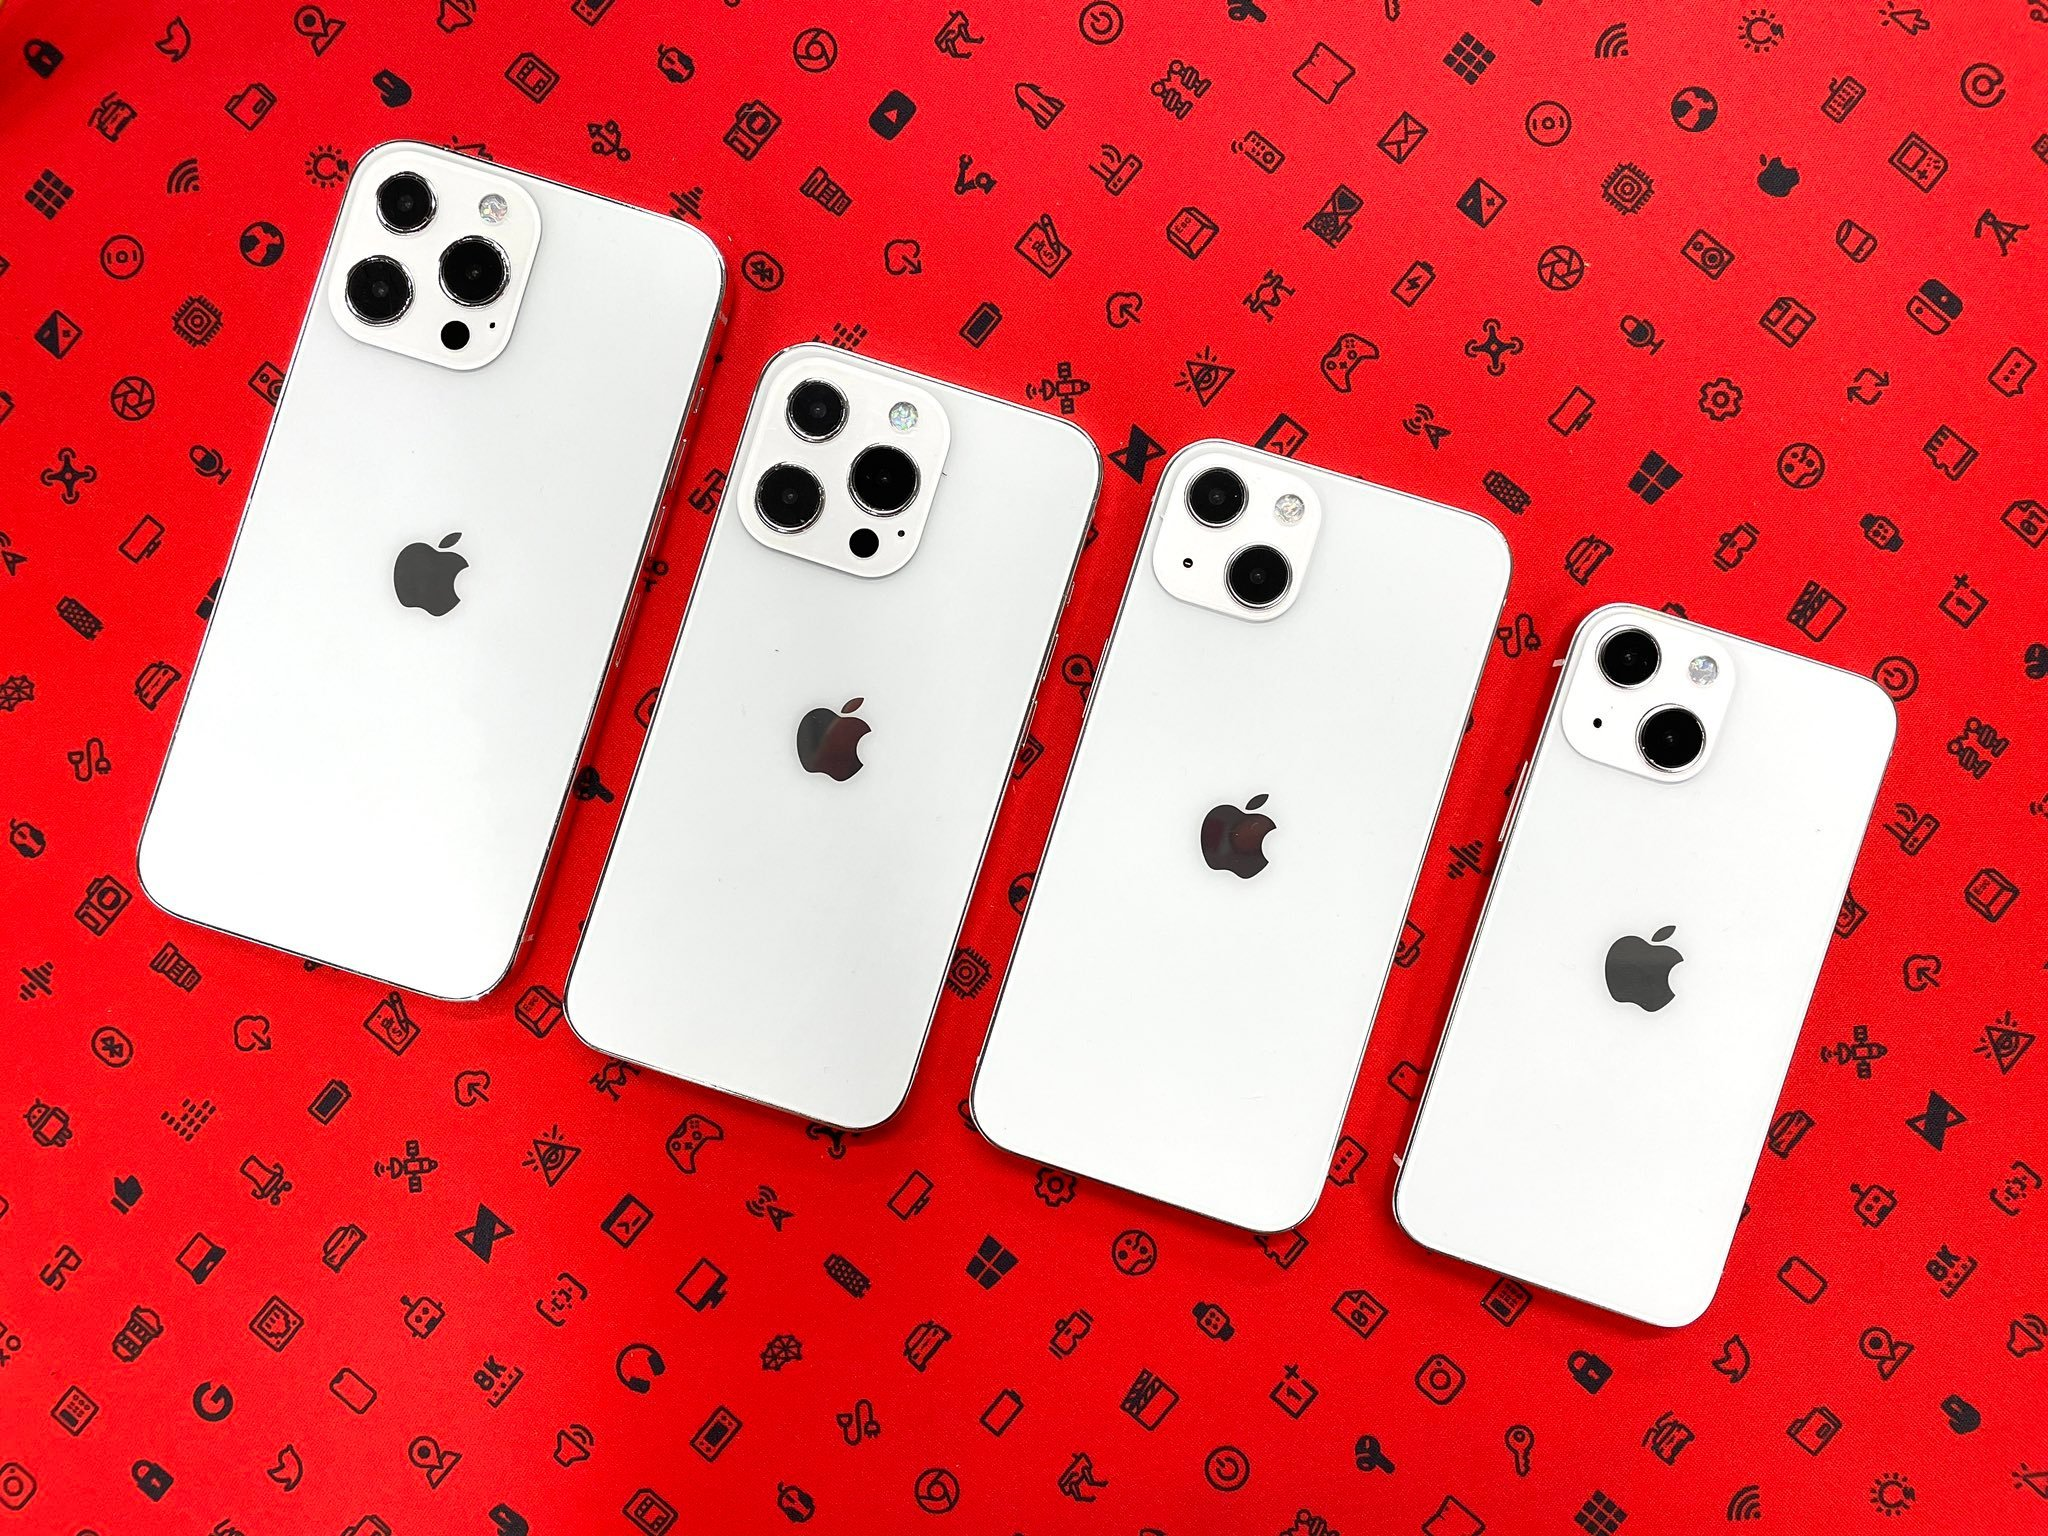 Apple to offer two new color options for its upcoming iPhone 13 series